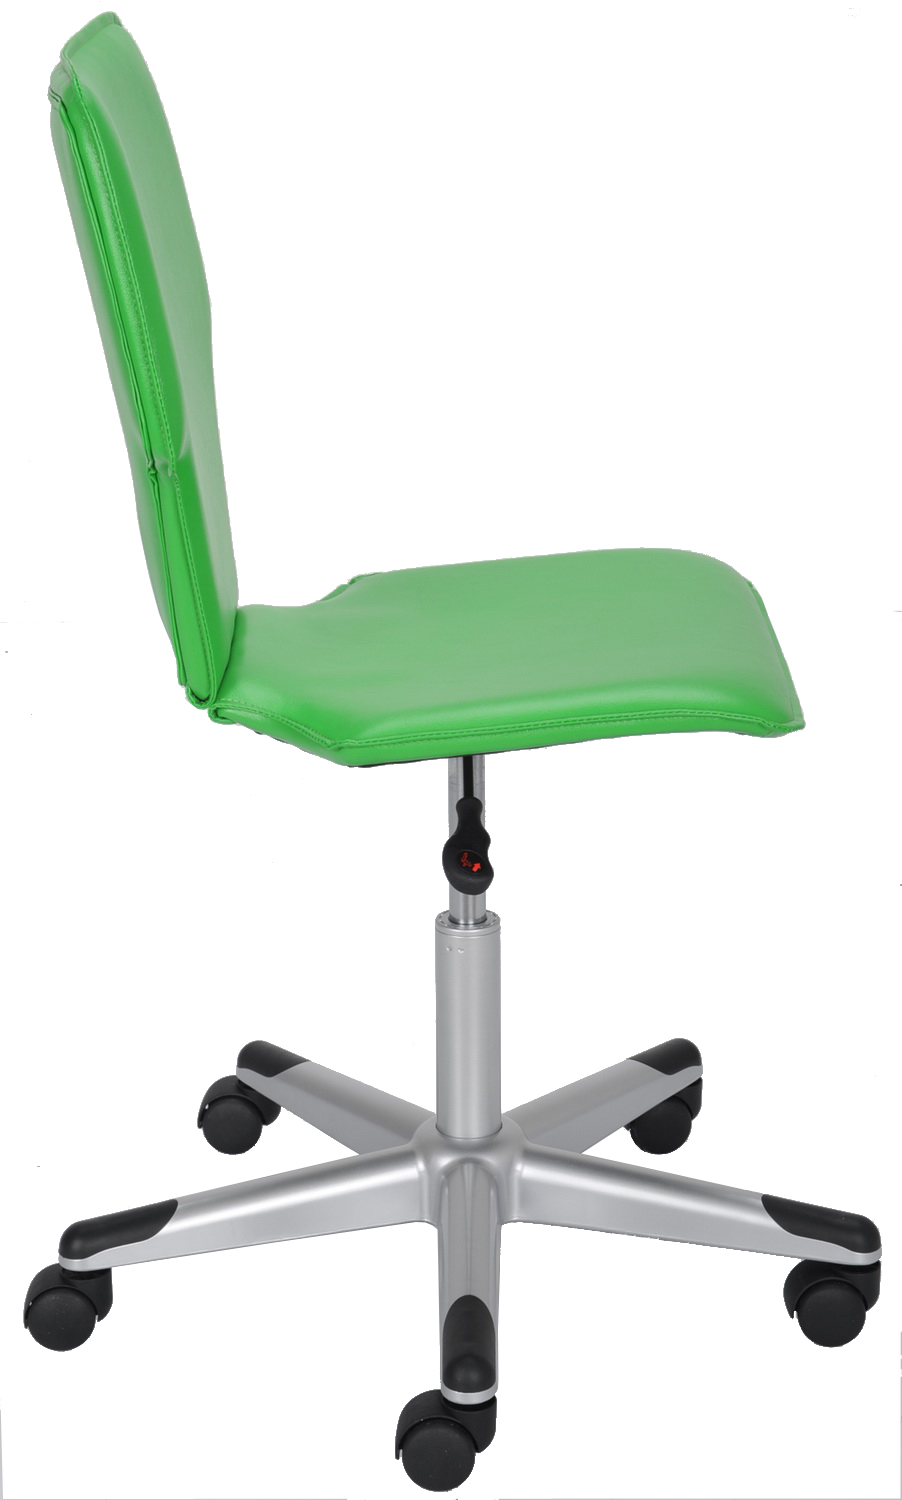 Mainstays Glass Top Desk And Chair Value Bundle Multiple Colors Com